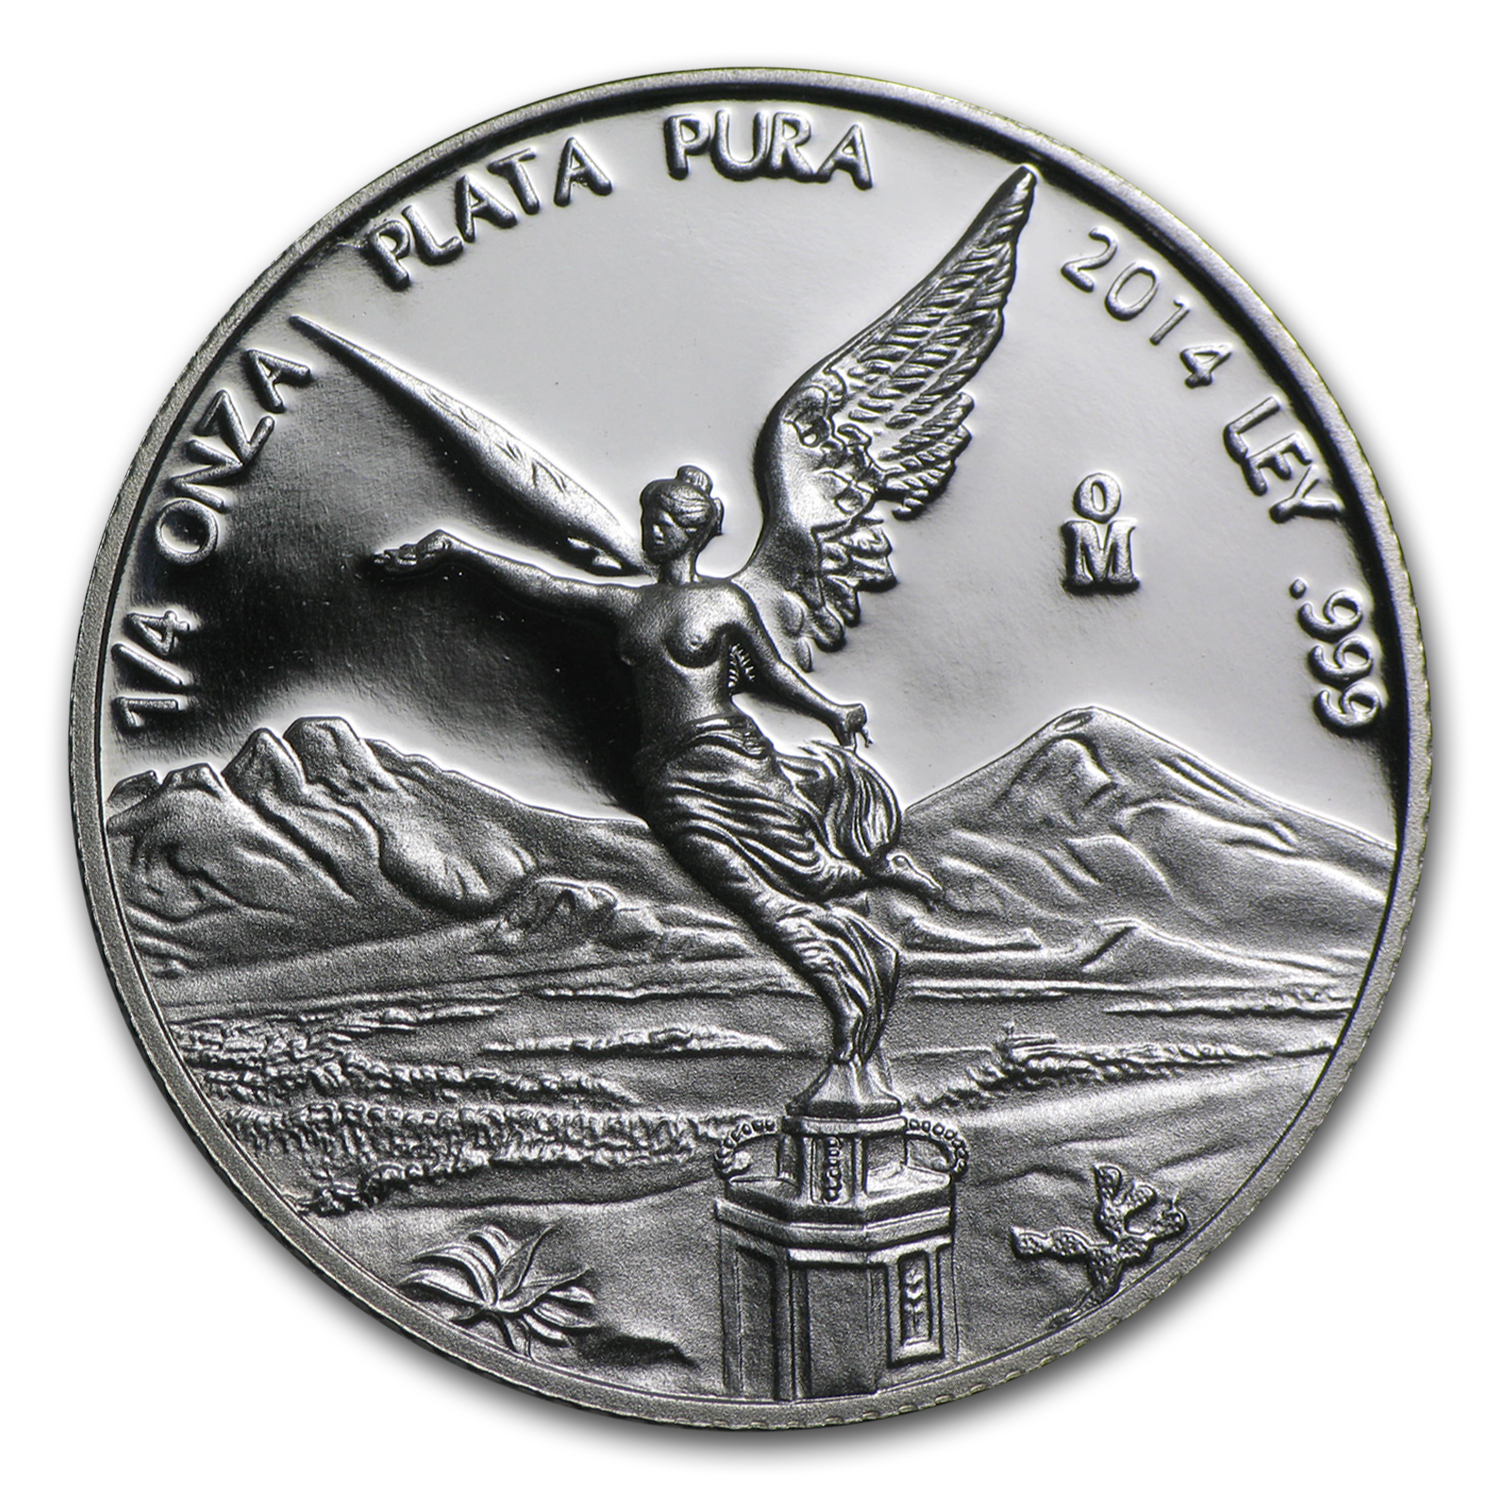 2014 Mexico 1/4 oz Silver Libertad Proof (In Capsule)